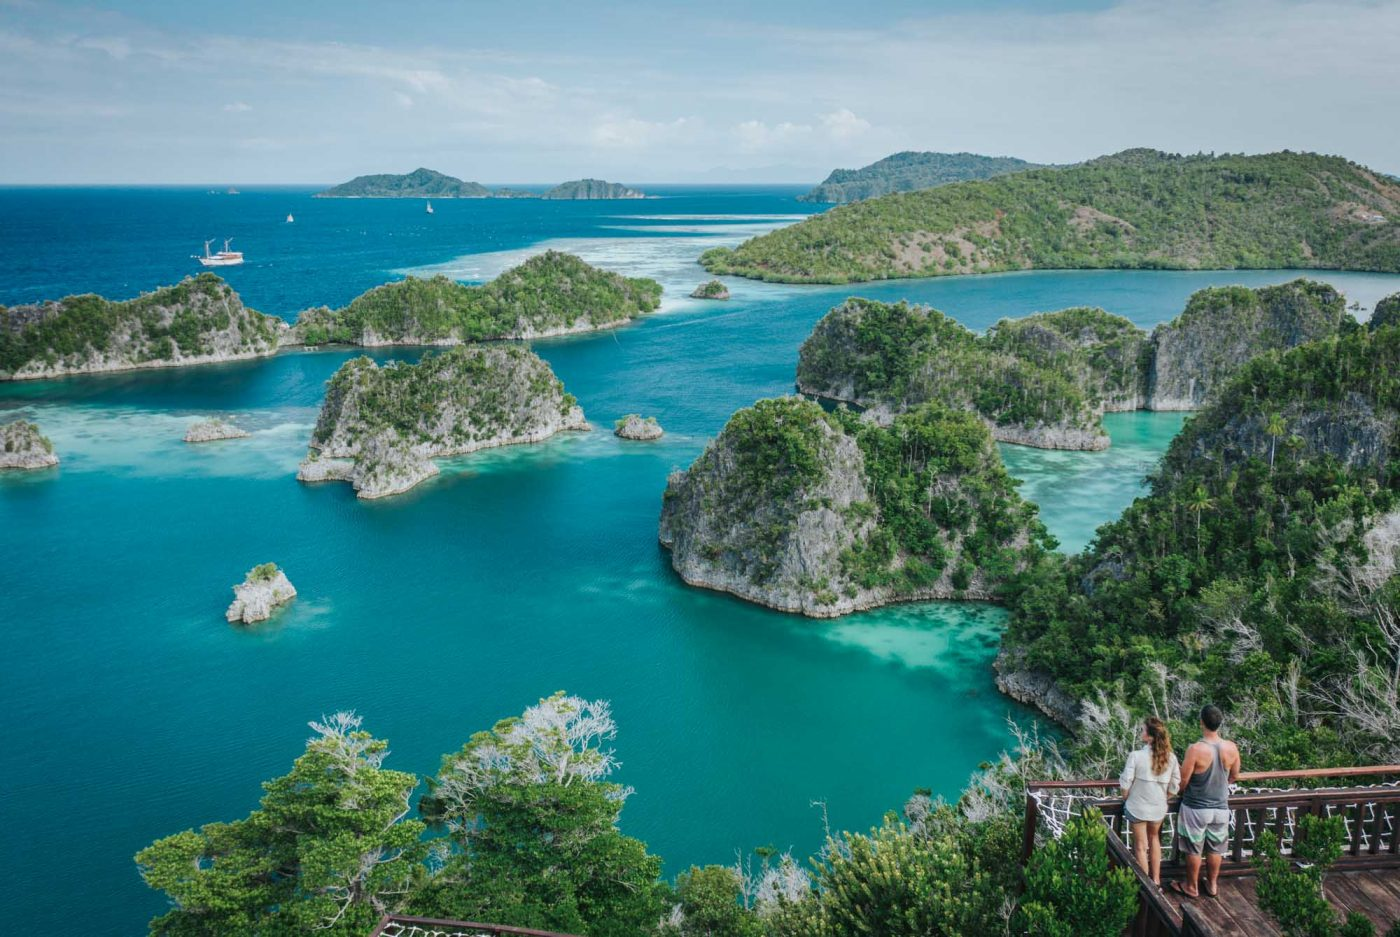 Overlooking the islands of Raja Ampat, Indonesia